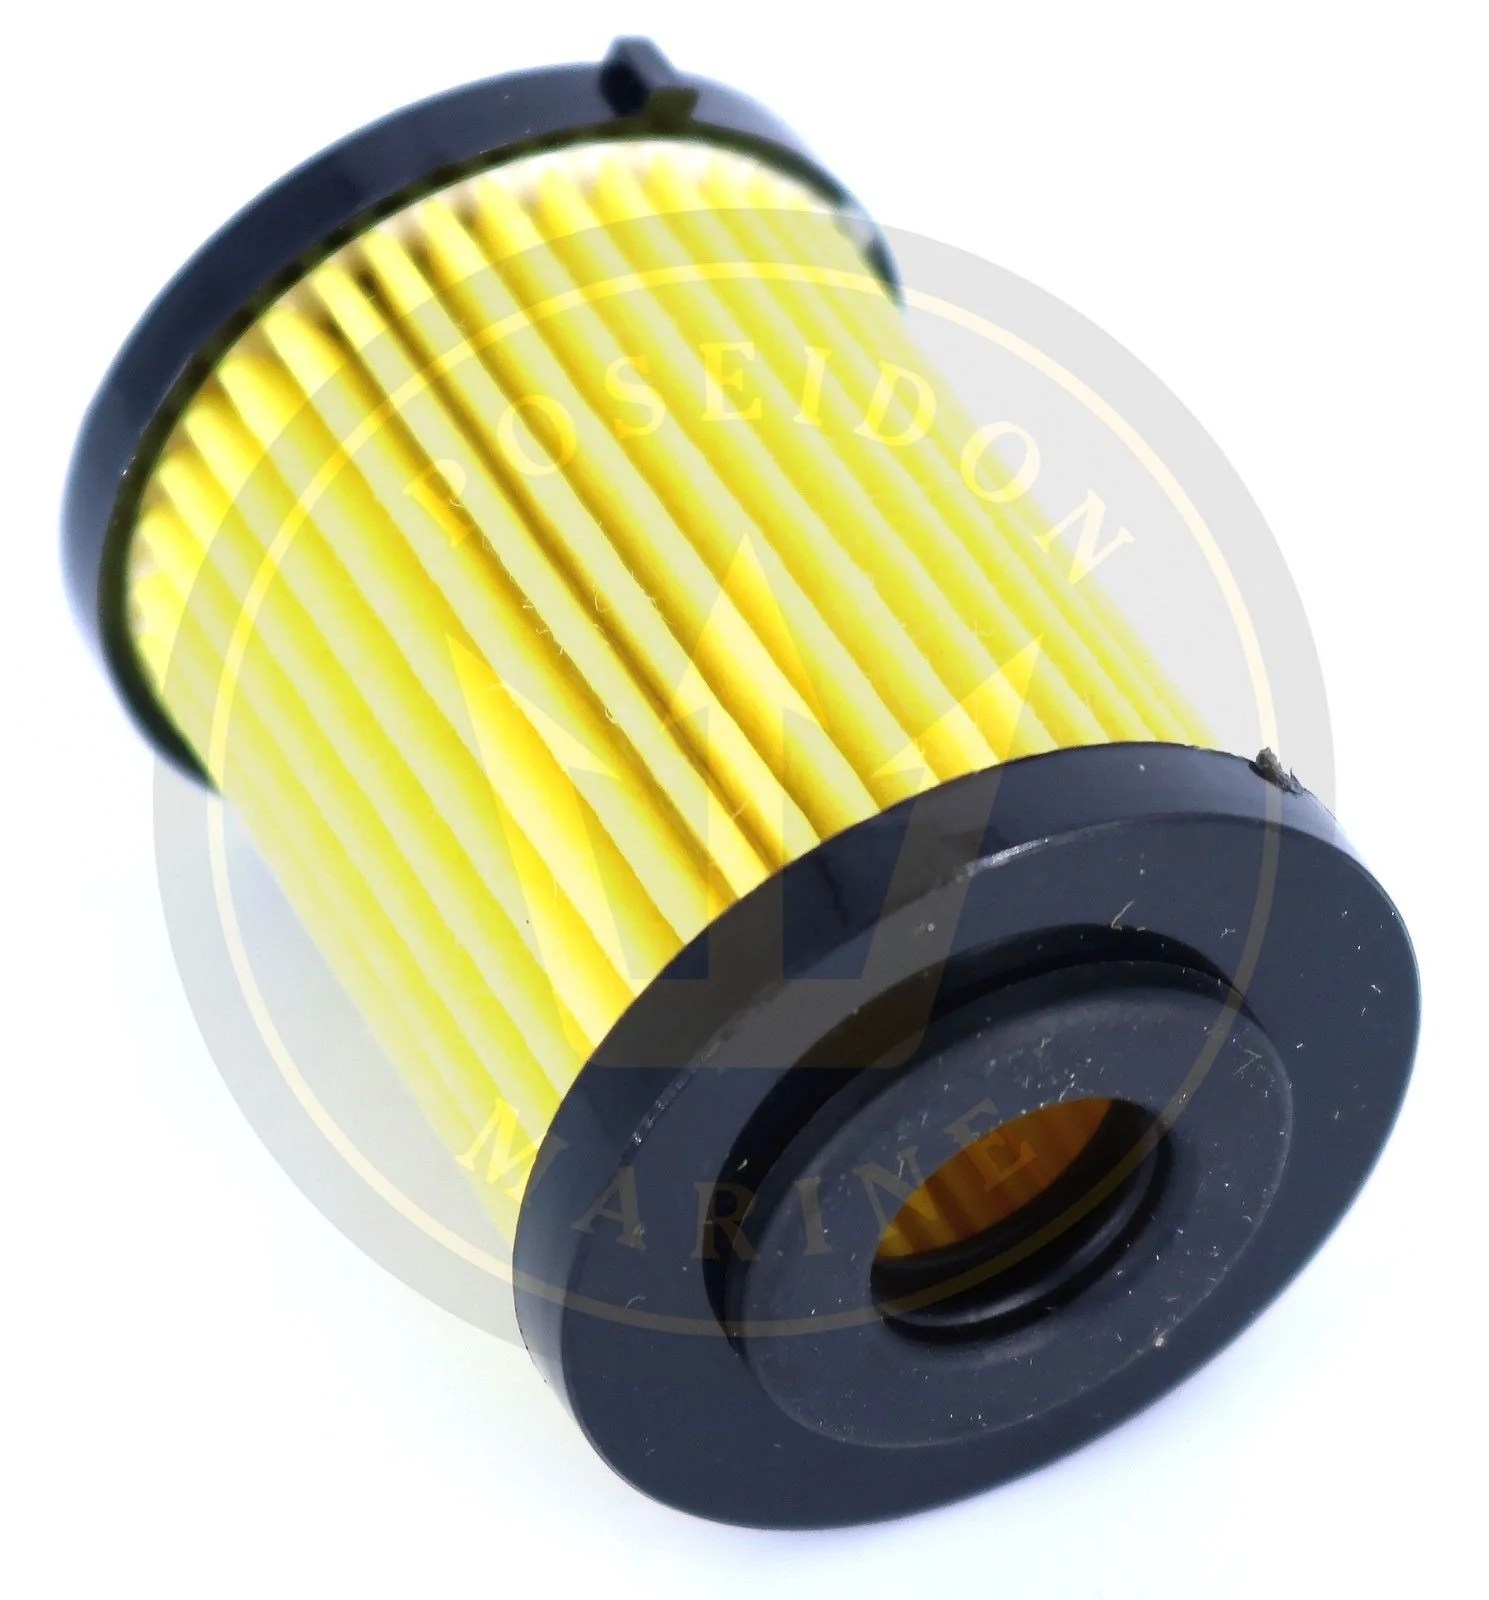 medium resolution of fuel filter element for yamaha 6p3 ws24a 00 150 200 225 250 300hp outboard